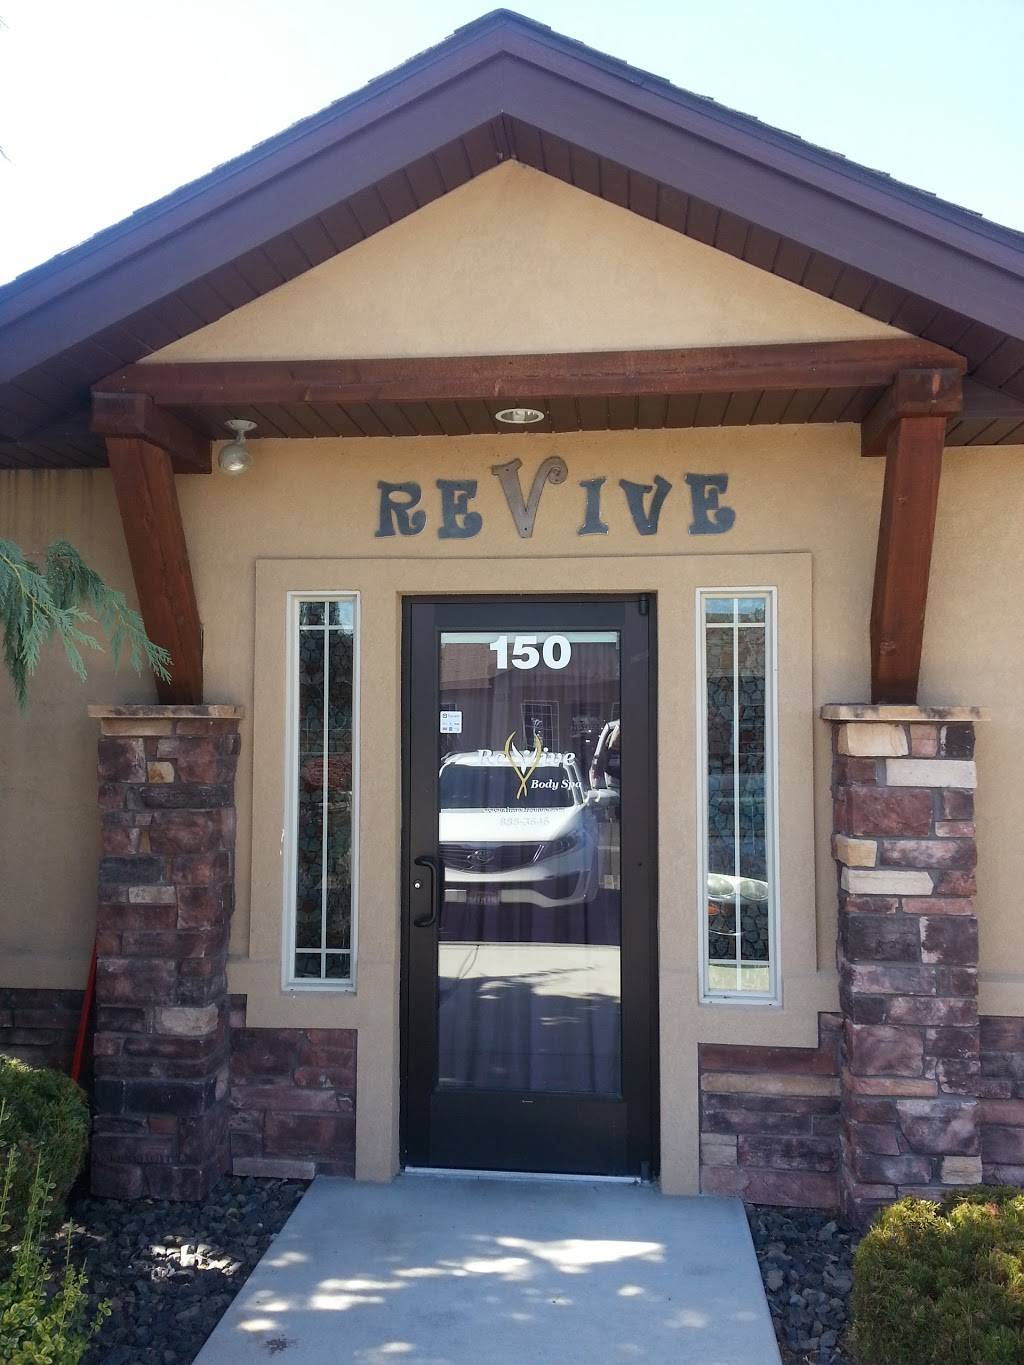 Skin Care By Anthony at ReVive Body Spa - spa  | Photo 5 of 9 | Address: 3723 N Locust Grove Rd #150, Meridian, ID 83646, USA | Phone: (208) 440-0242